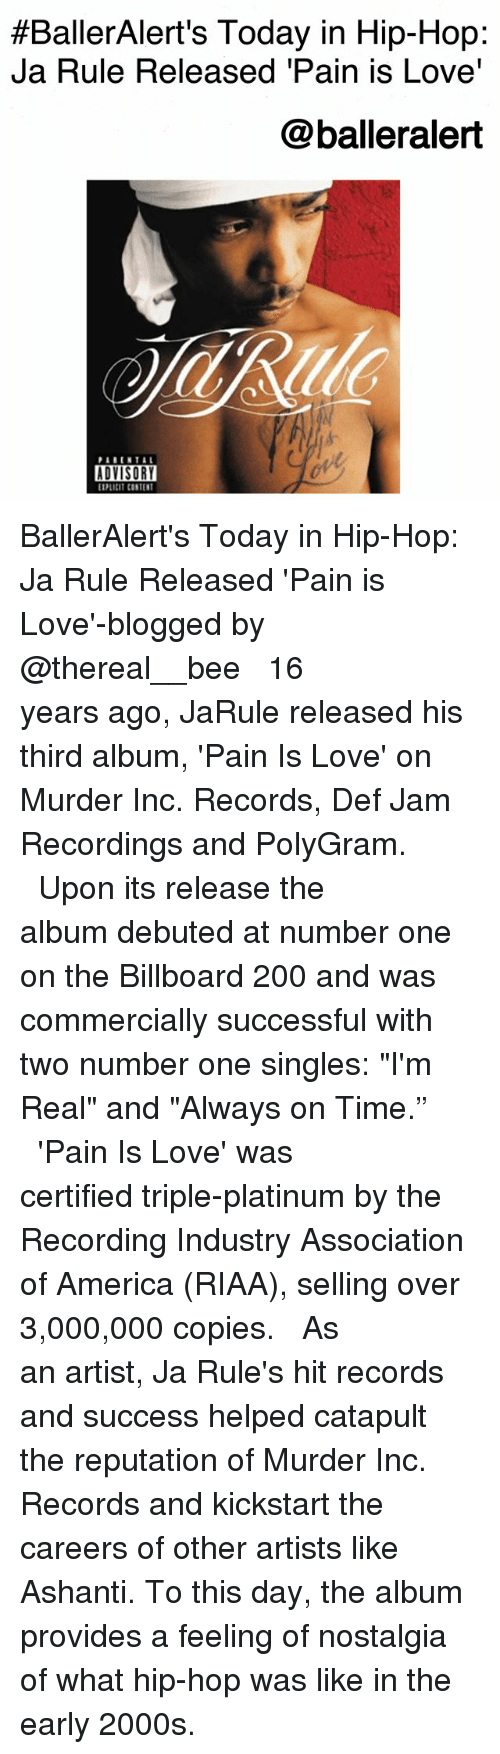 "Ashanti:  #BallerAlert's Today in Hip-Hop:  Ja Rule Released 'Pain is Love'  @balleralert  PARENTA  ADVISORY  PLICIT CONTENT BallerAlert's Today in Hip-Hop: Ja Rule Released 'Pain is Love'-blogged by @thereal__bee ⠀⠀⠀⠀⠀⠀⠀⠀⠀ ⠀⠀ 16 years ago, JaRule released his third album, 'Pain Is Love' on Murder Inc. Records, Def Jam Recordings and PolyGram. ⠀⠀⠀⠀⠀⠀⠀⠀⠀ ⠀⠀ Upon its release the album debuted at number one on the Billboard 200 and was commercially successful with two number one singles: ""I'm Real"" and ""Always on Time."" ⠀⠀⠀⠀⠀⠀⠀⠀⠀ ⠀⠀ 'Pain Is Love' was certified triple-platinum by the Recording Industry Association of America (RIAA), selling over 3,000,000 copies. ⠀⠀⠀⠀⠀⠀⠀⠀⠀ ⠀⠀ As an artist, Ja Rule's hit records and success helped catapult the reputation of Murder Inc. Records and kickstart the careers of other artists like Ashanti. To this day, the album provides a feeling of nostalgia of what hip-hop was like in the early 2000s."